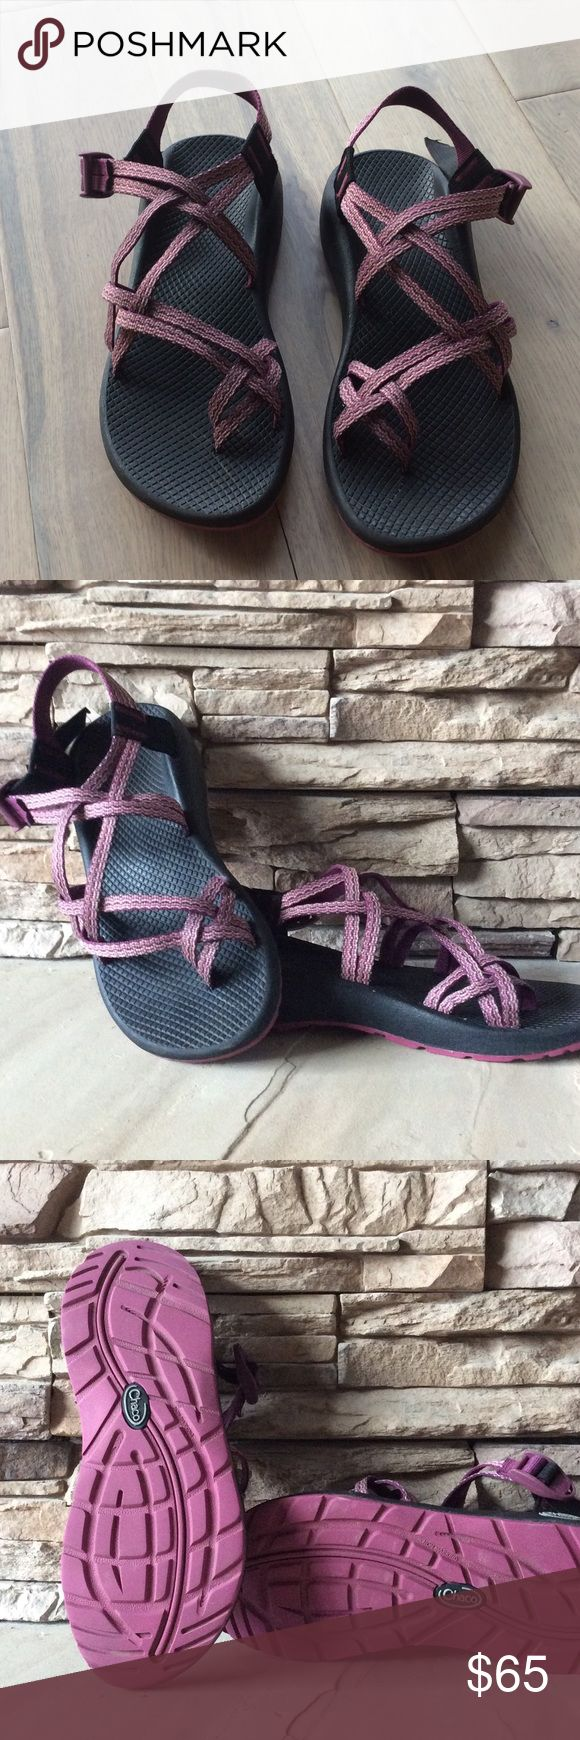 Size 10 Women's Chacos! $65.00! These Chacos are slightly used and in great shape! Chaco Shoes Sandals